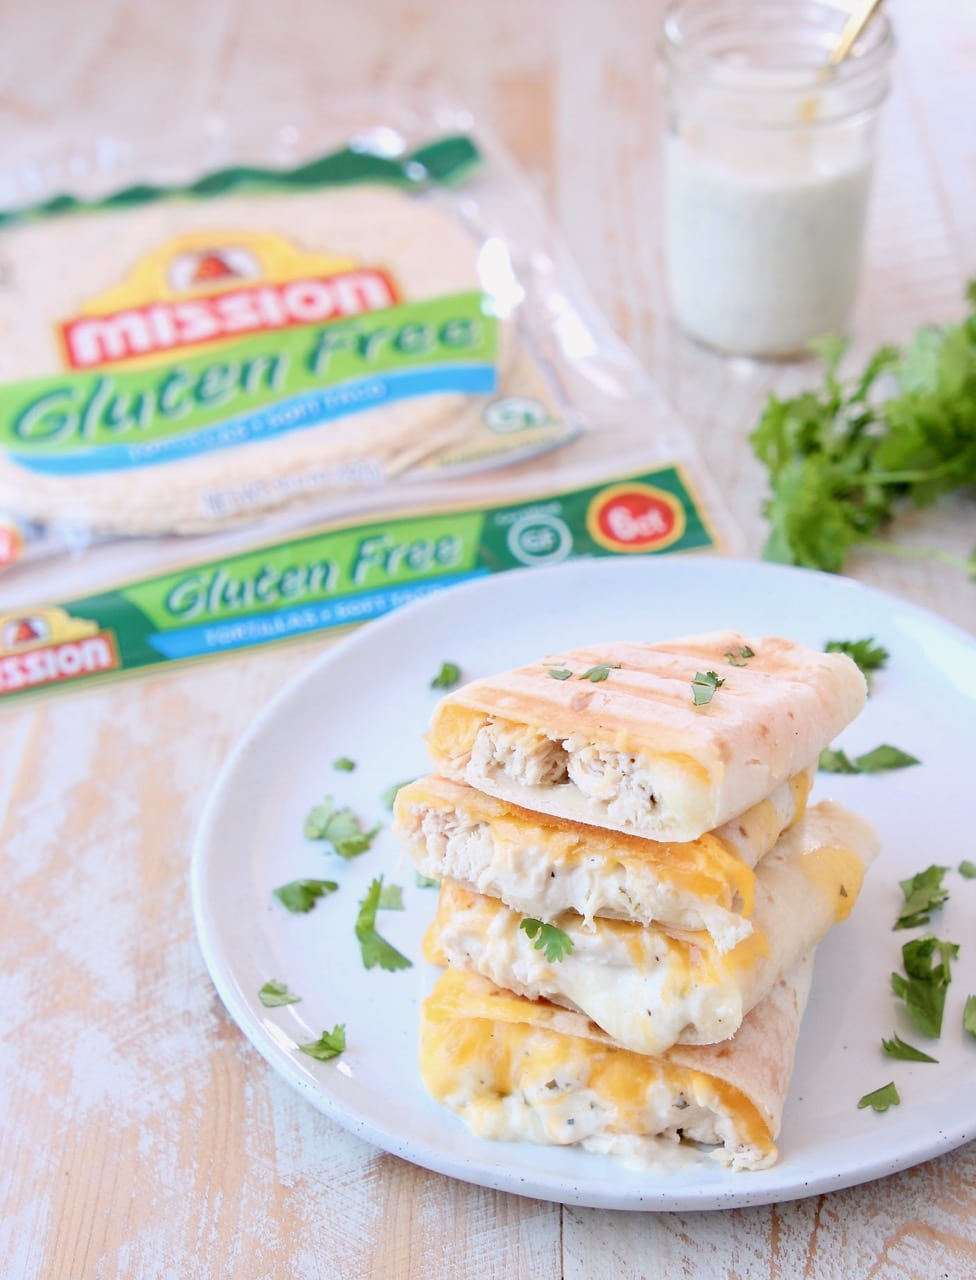 Gluten Free Tortillas in package with Gluten Free Chicken Ranch Wraps grilled and cut in half